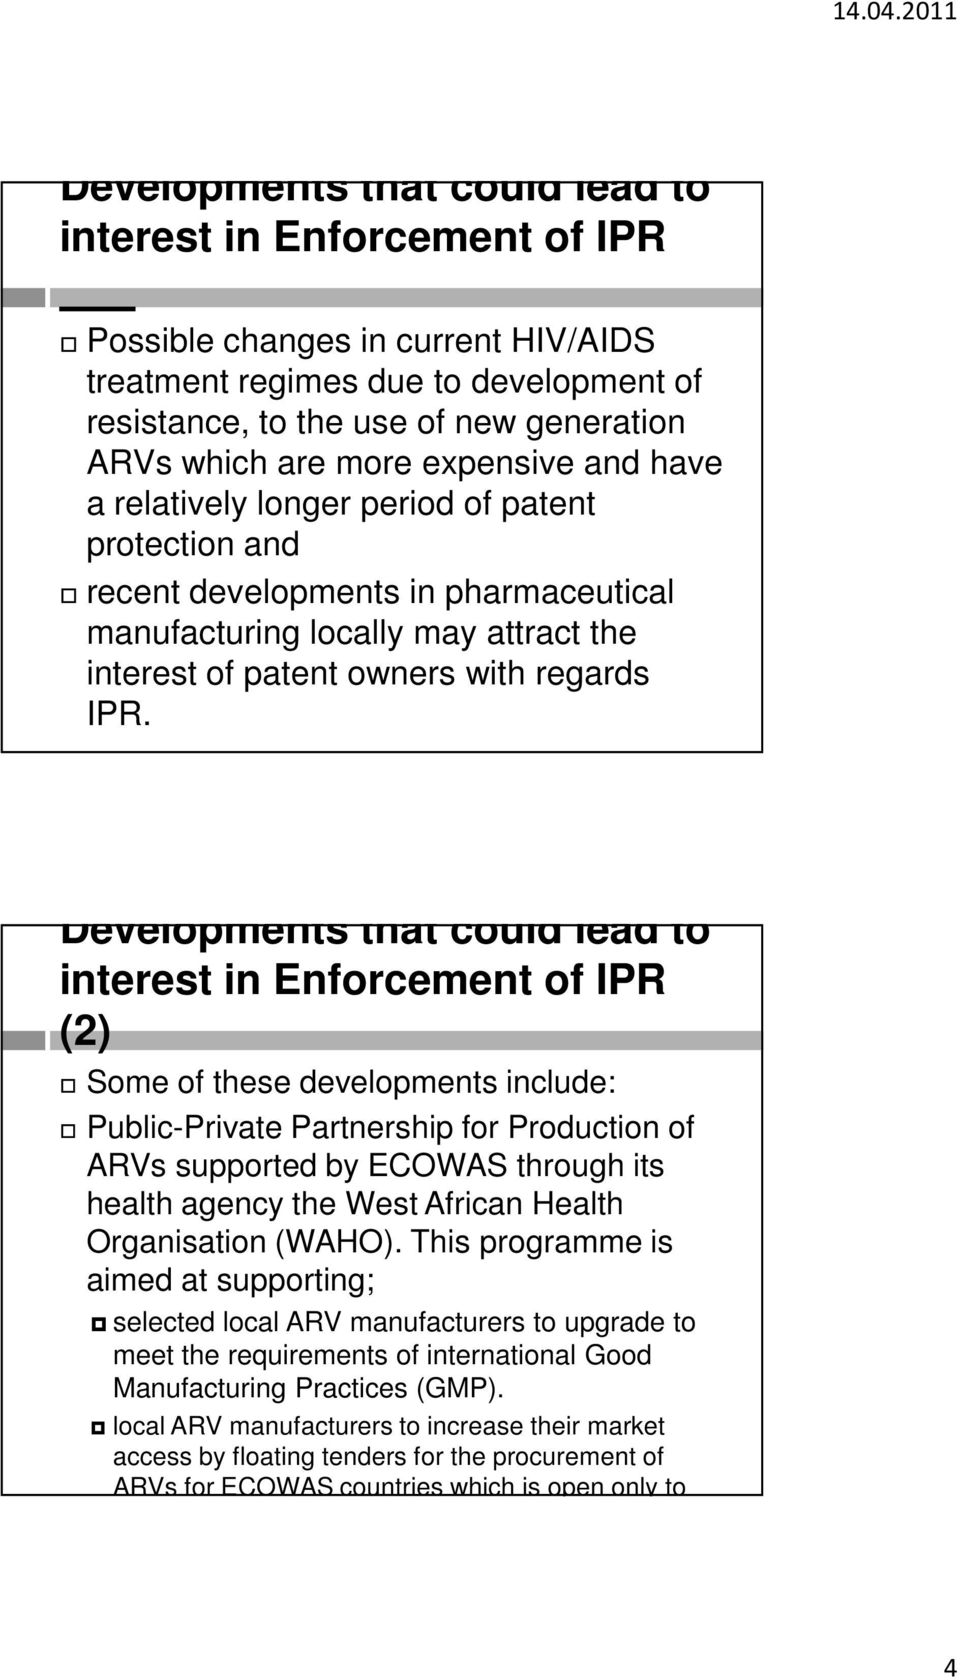 interest in Enforcement of IPR (2) Some of these developments include: Public-Private Partnership for Production of ARVs supported by ECOWAS through its health agency the West African Health